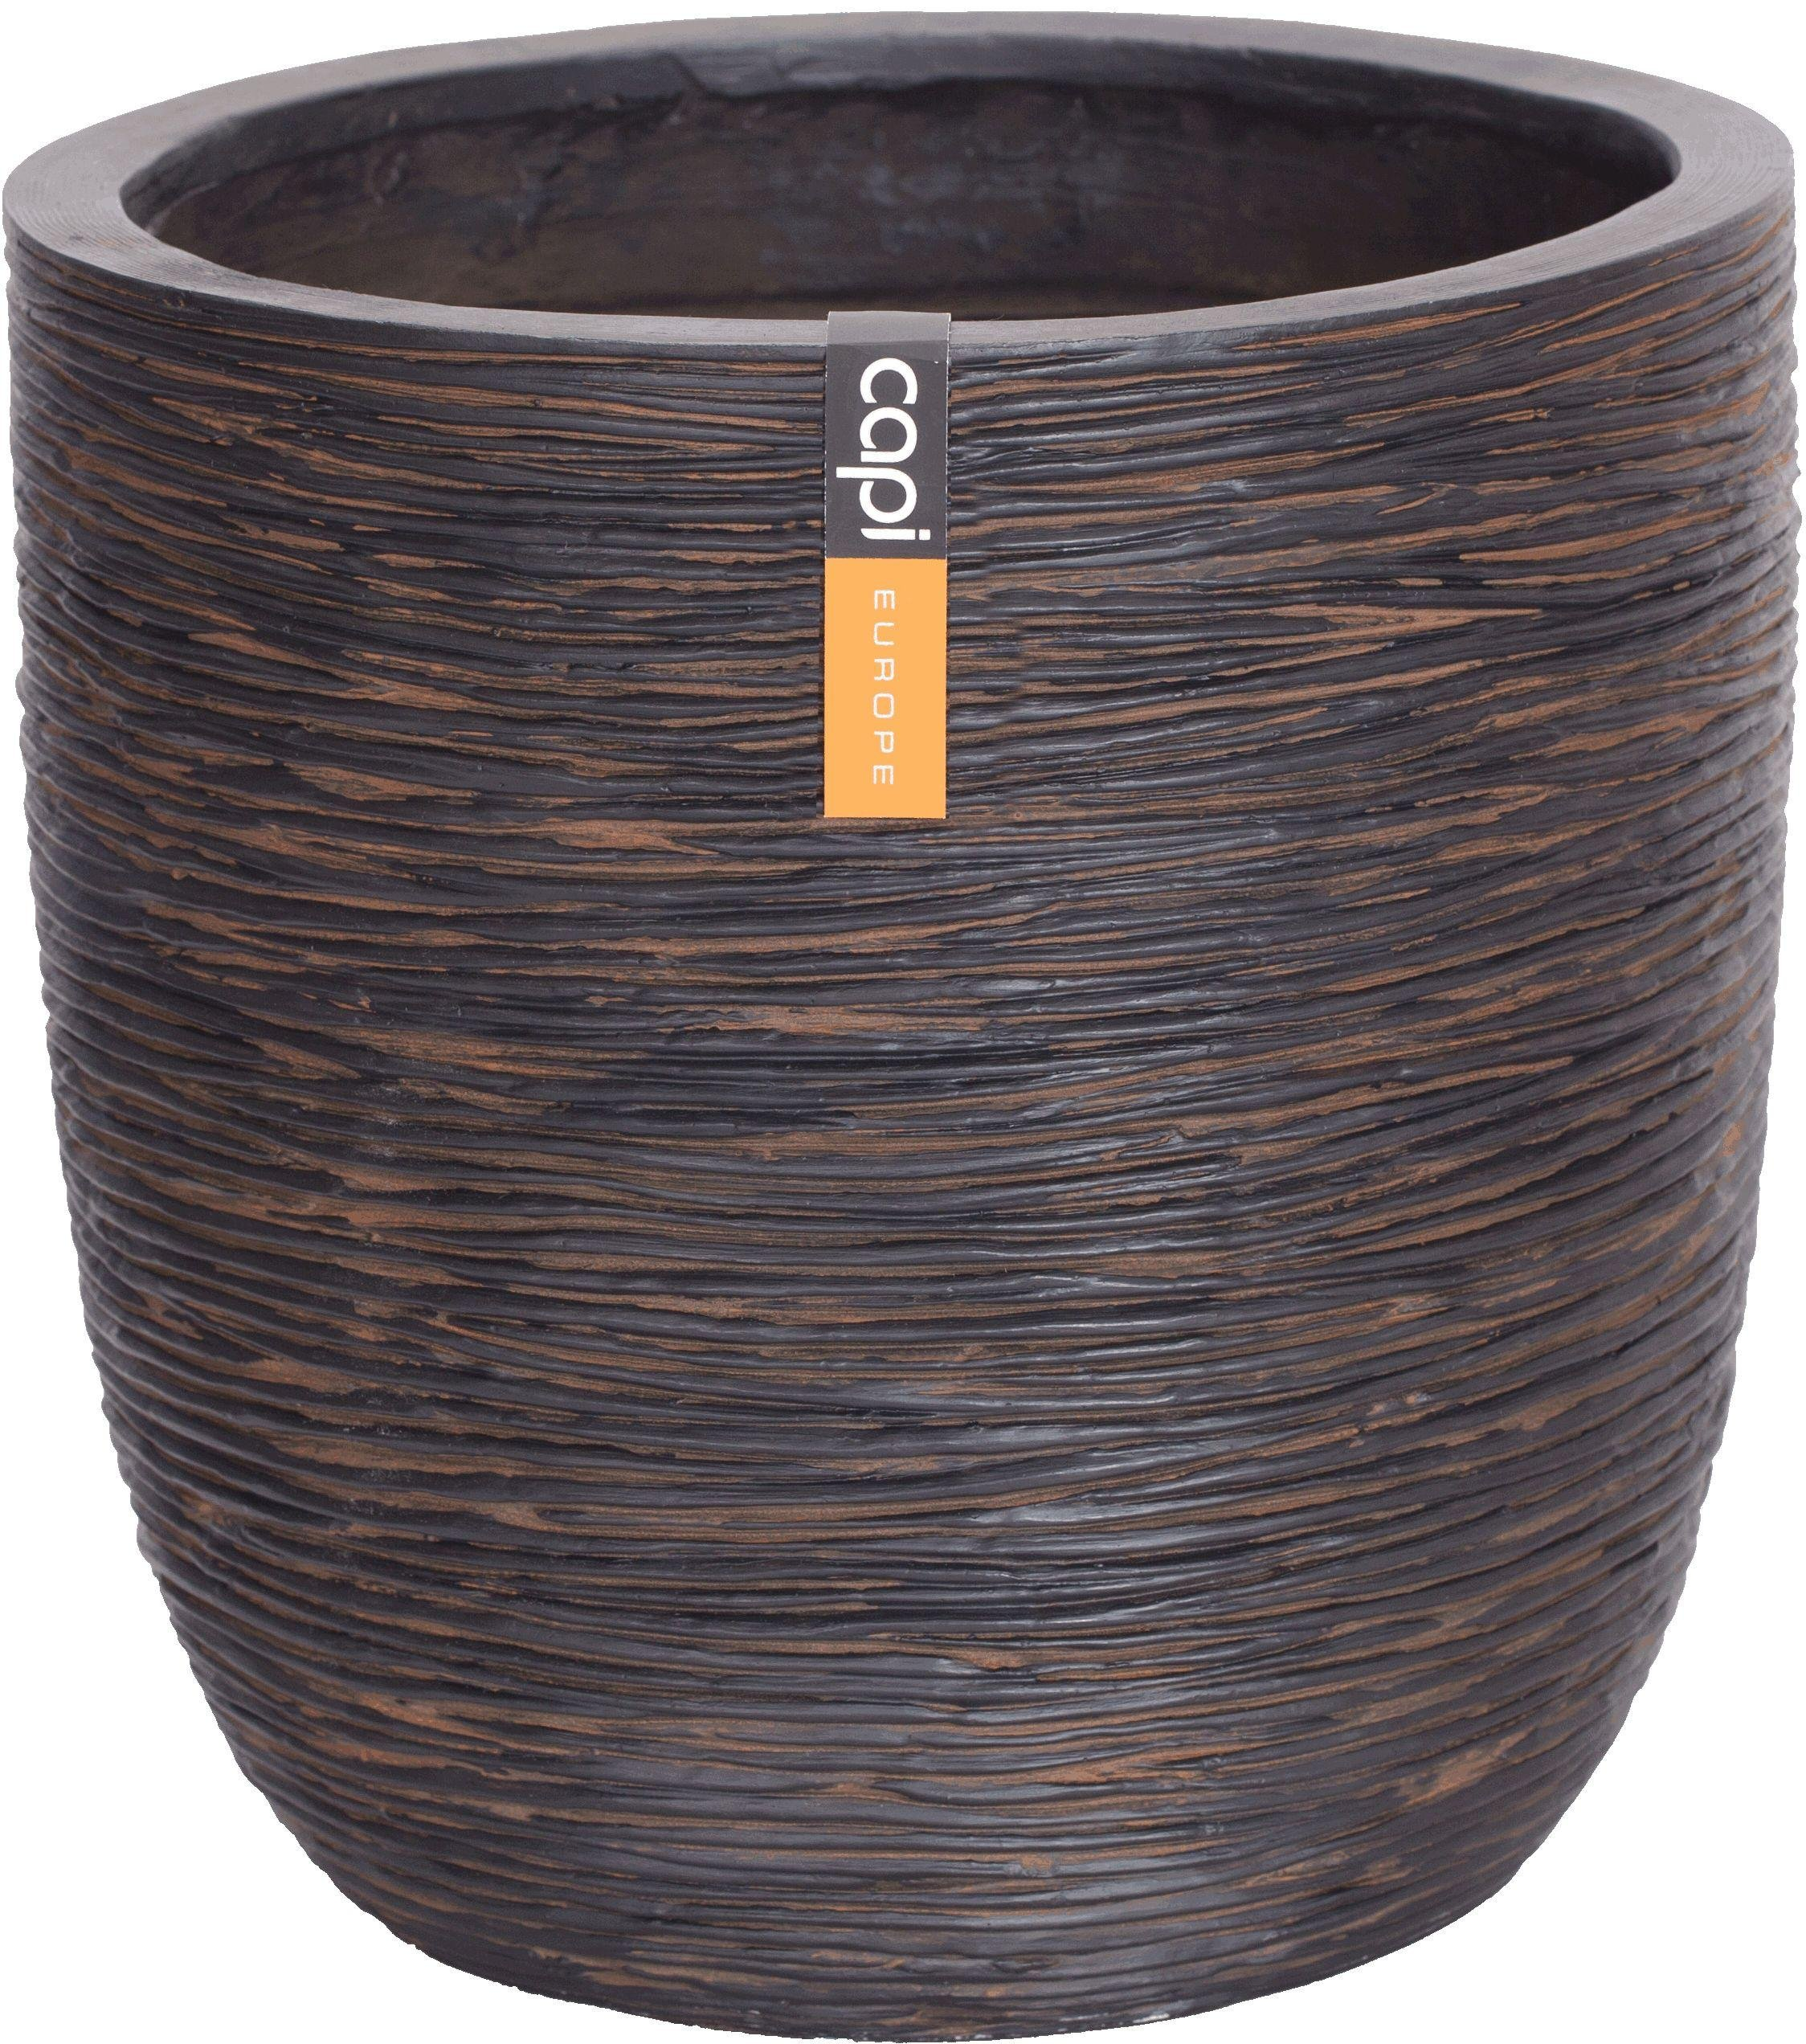 Capi - Nature Brown Ribbed Planter Egg - 34 x 34cm lowest price